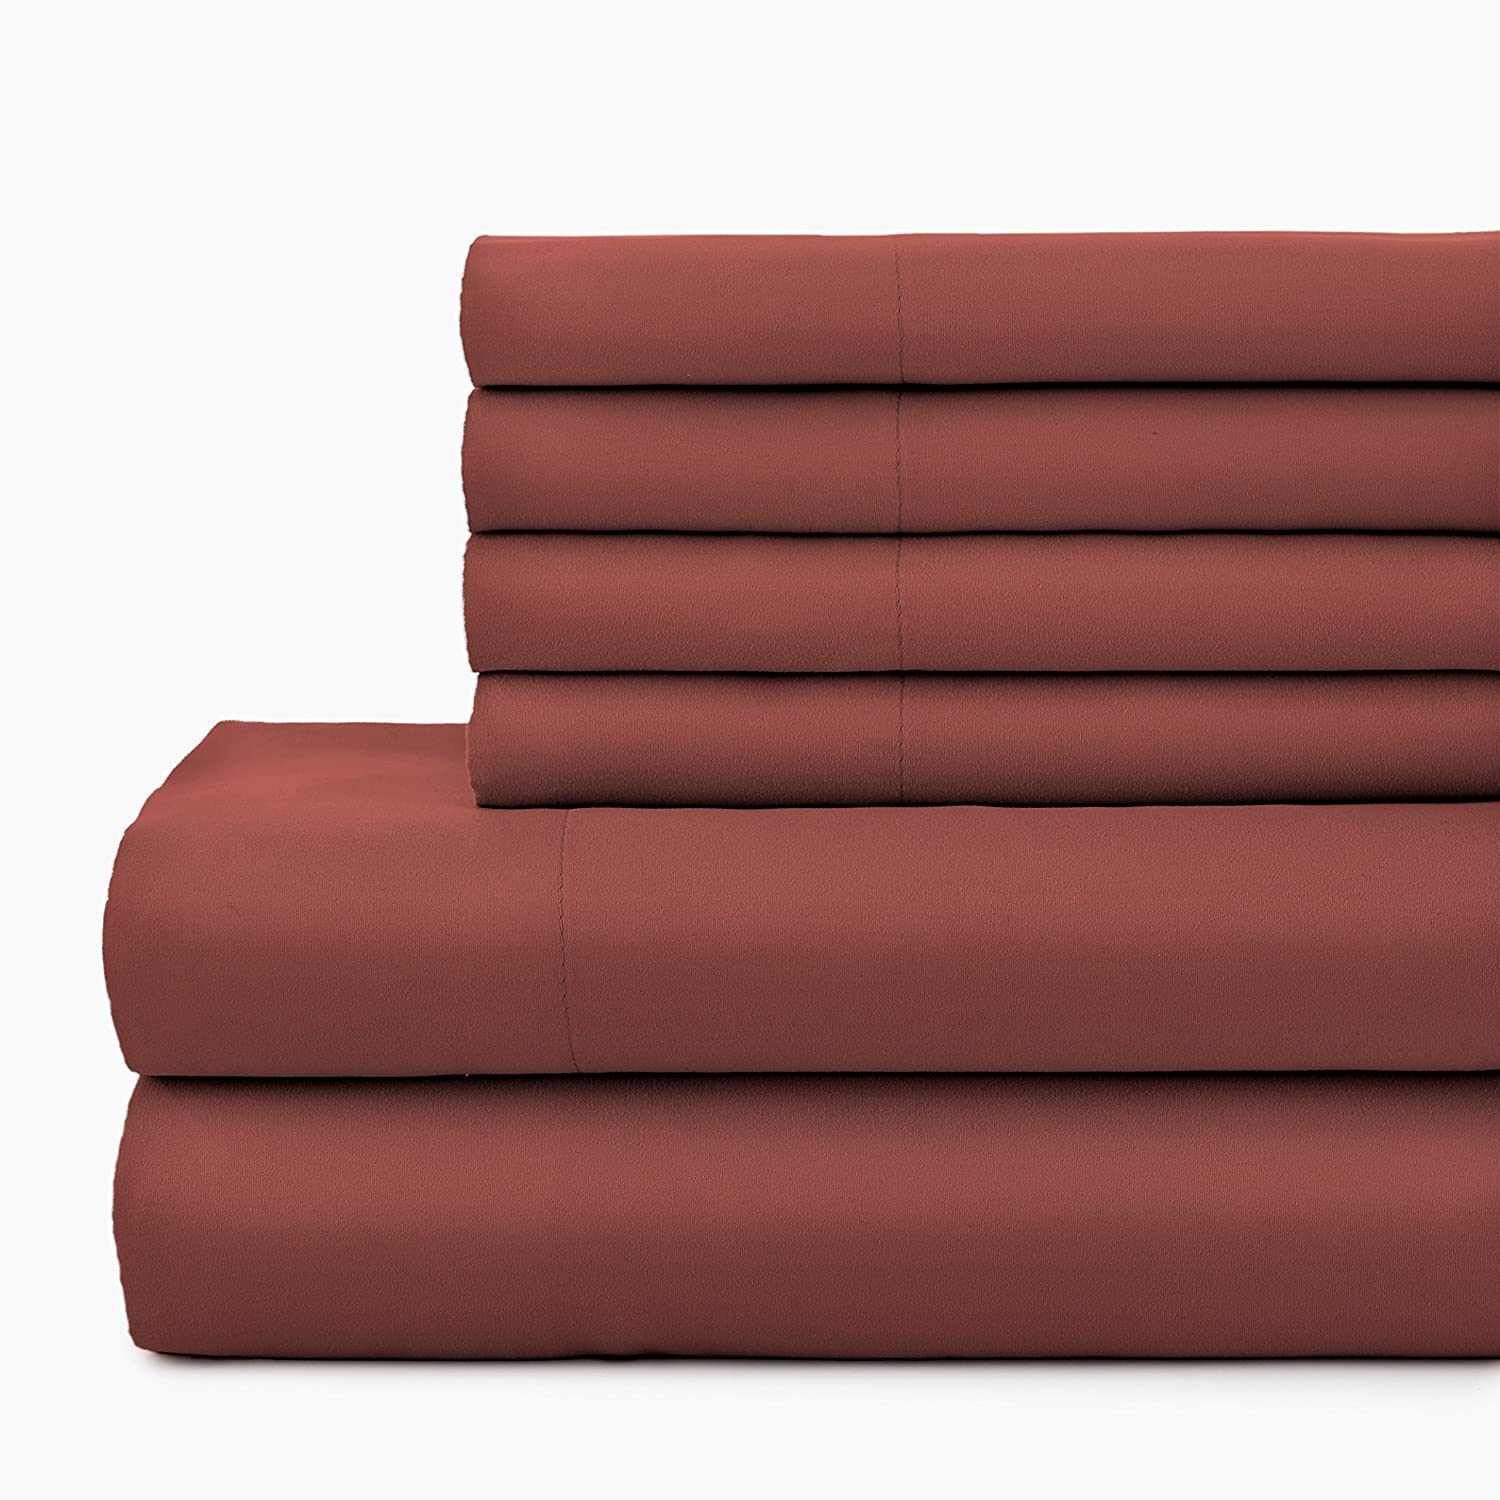 Best High quality microfiber sheets